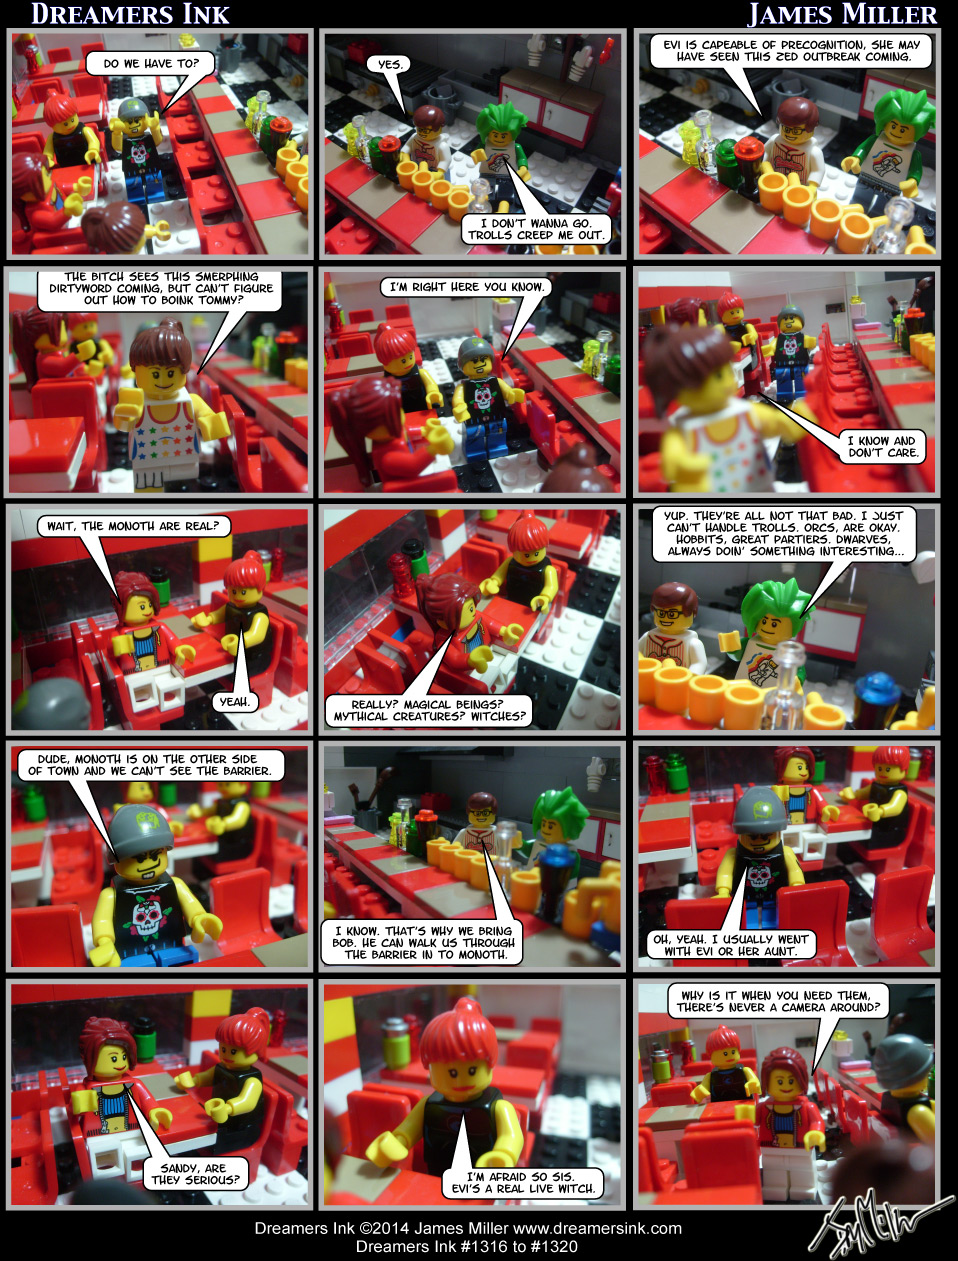 Strips #1316 To #1320